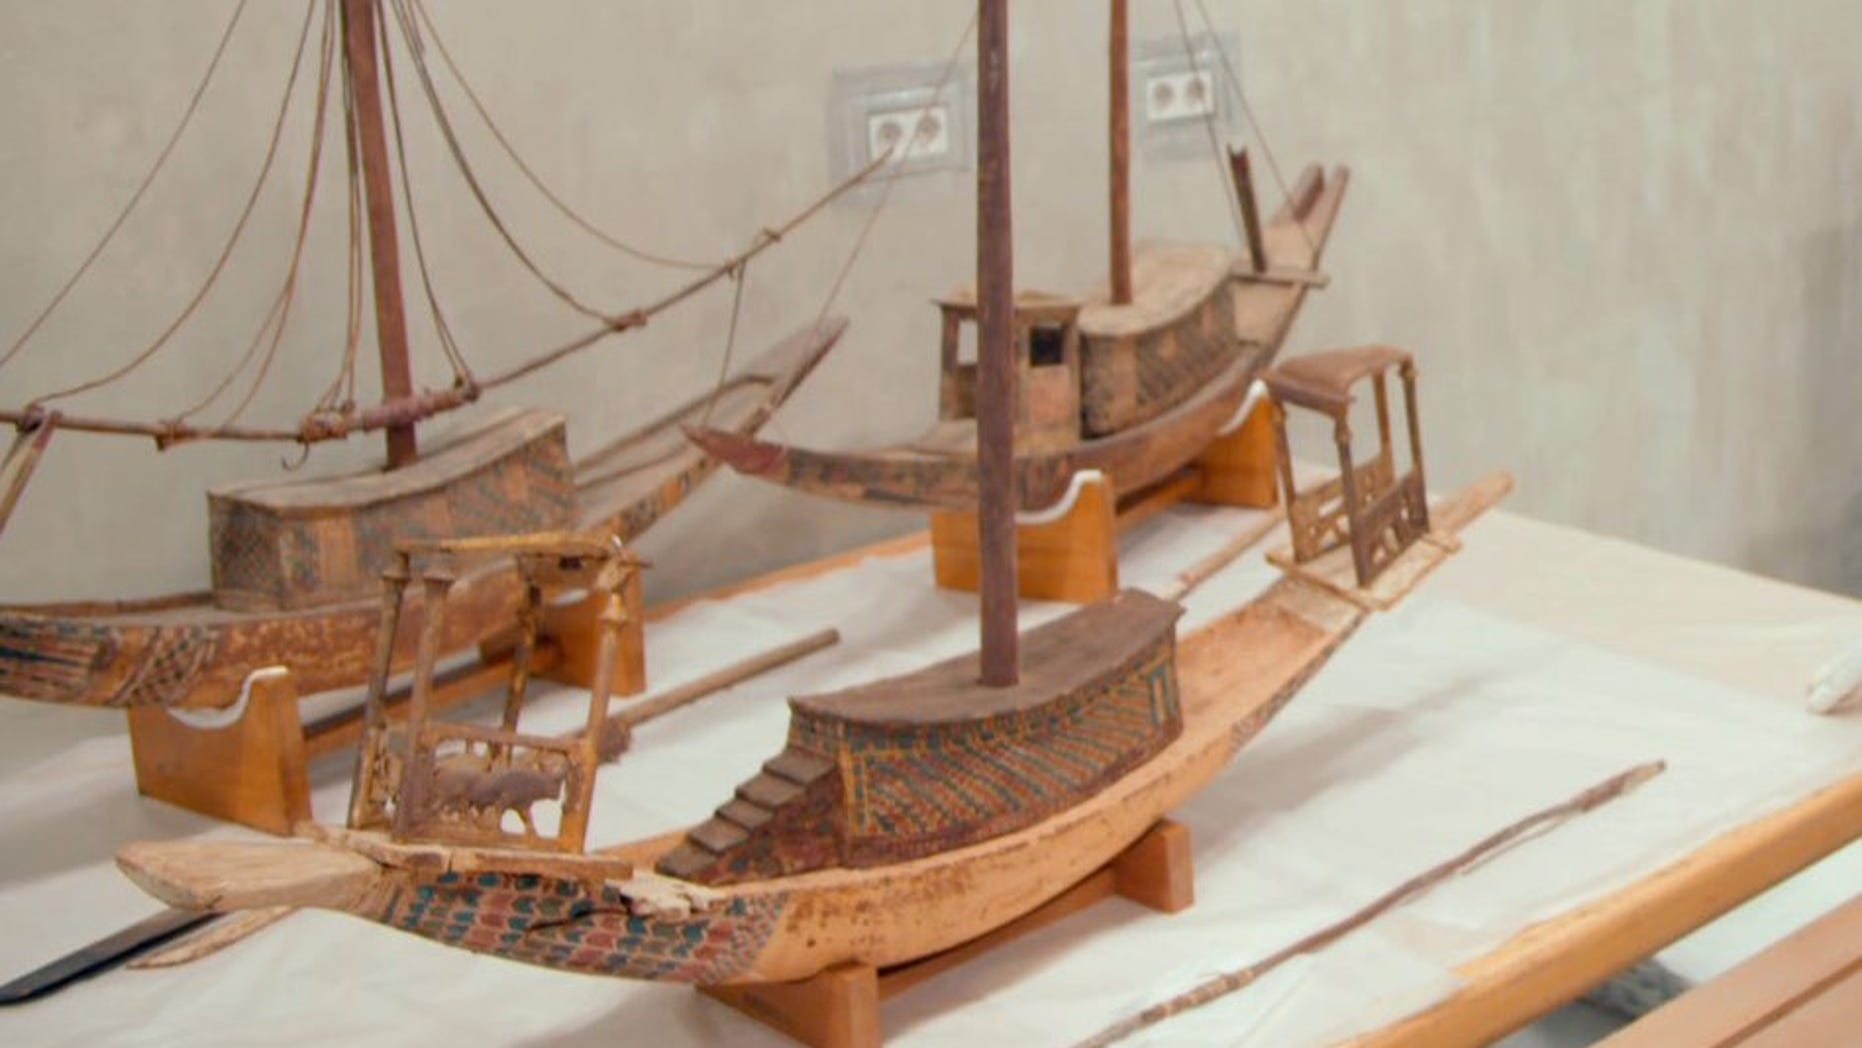 The newly rediscovered mast and boat pieces belonged to the boat in the foreground, meant for King Tut's afterlife.